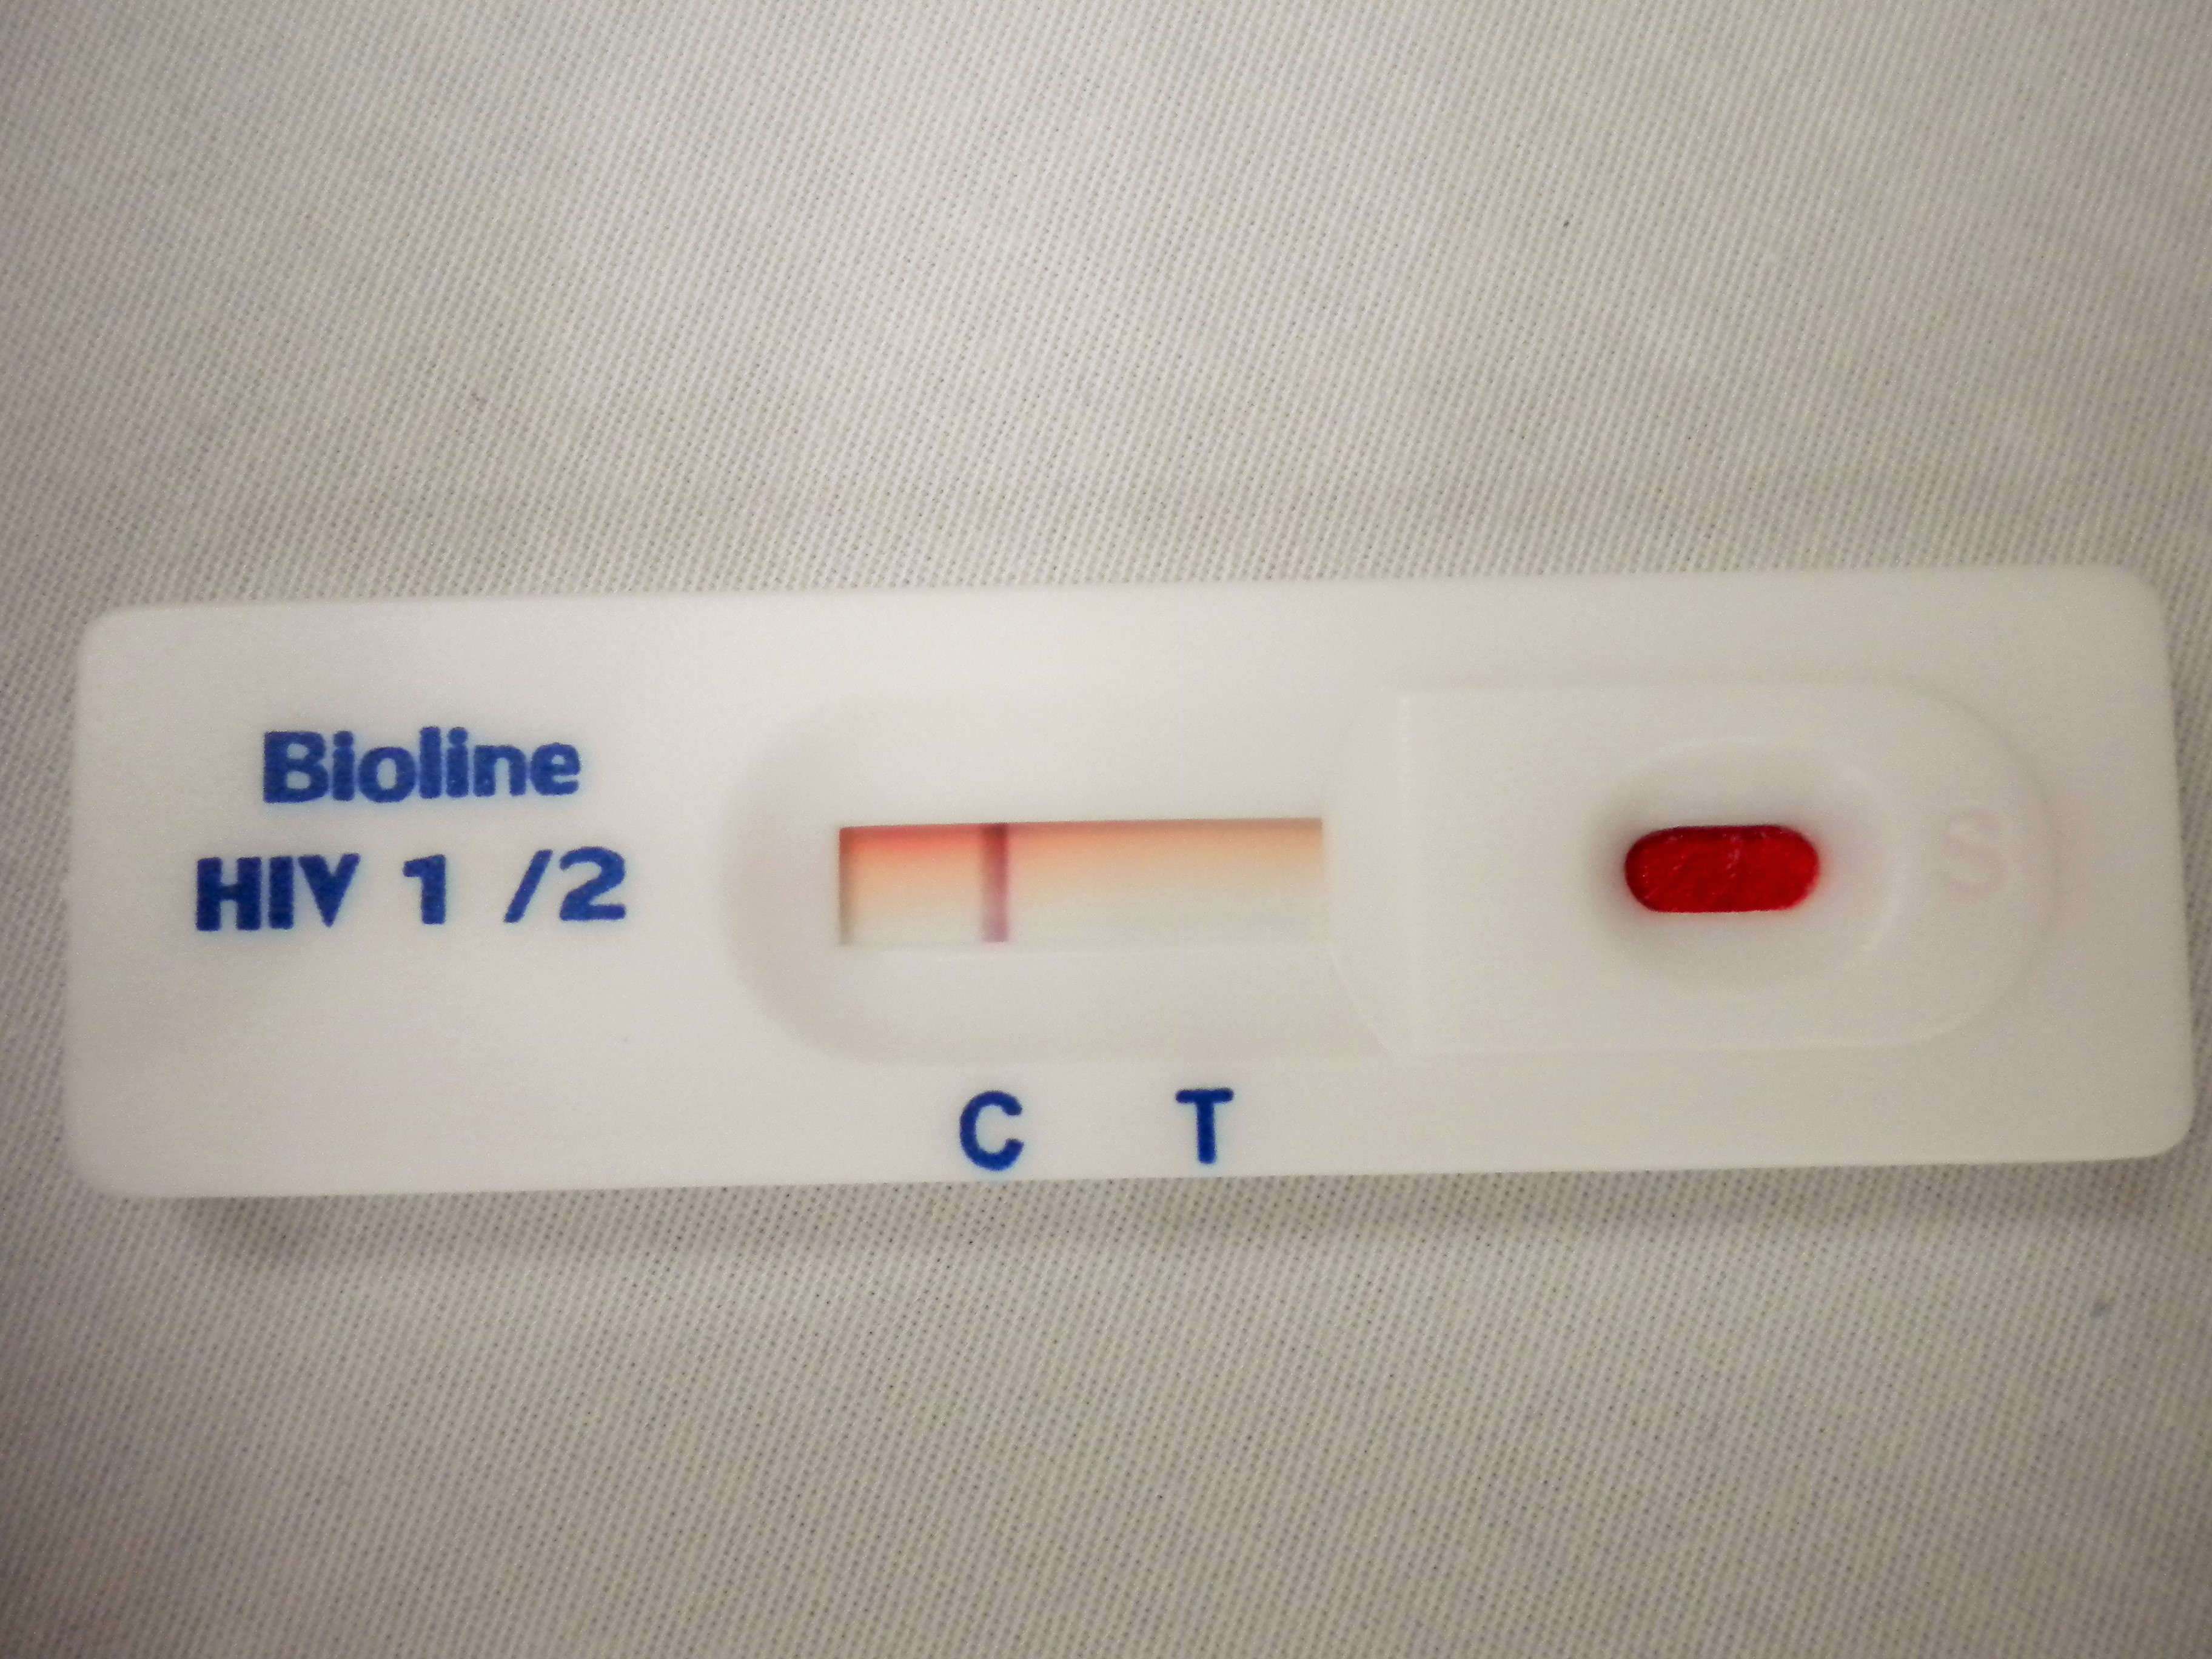 Hiv Test Result Images From It Works